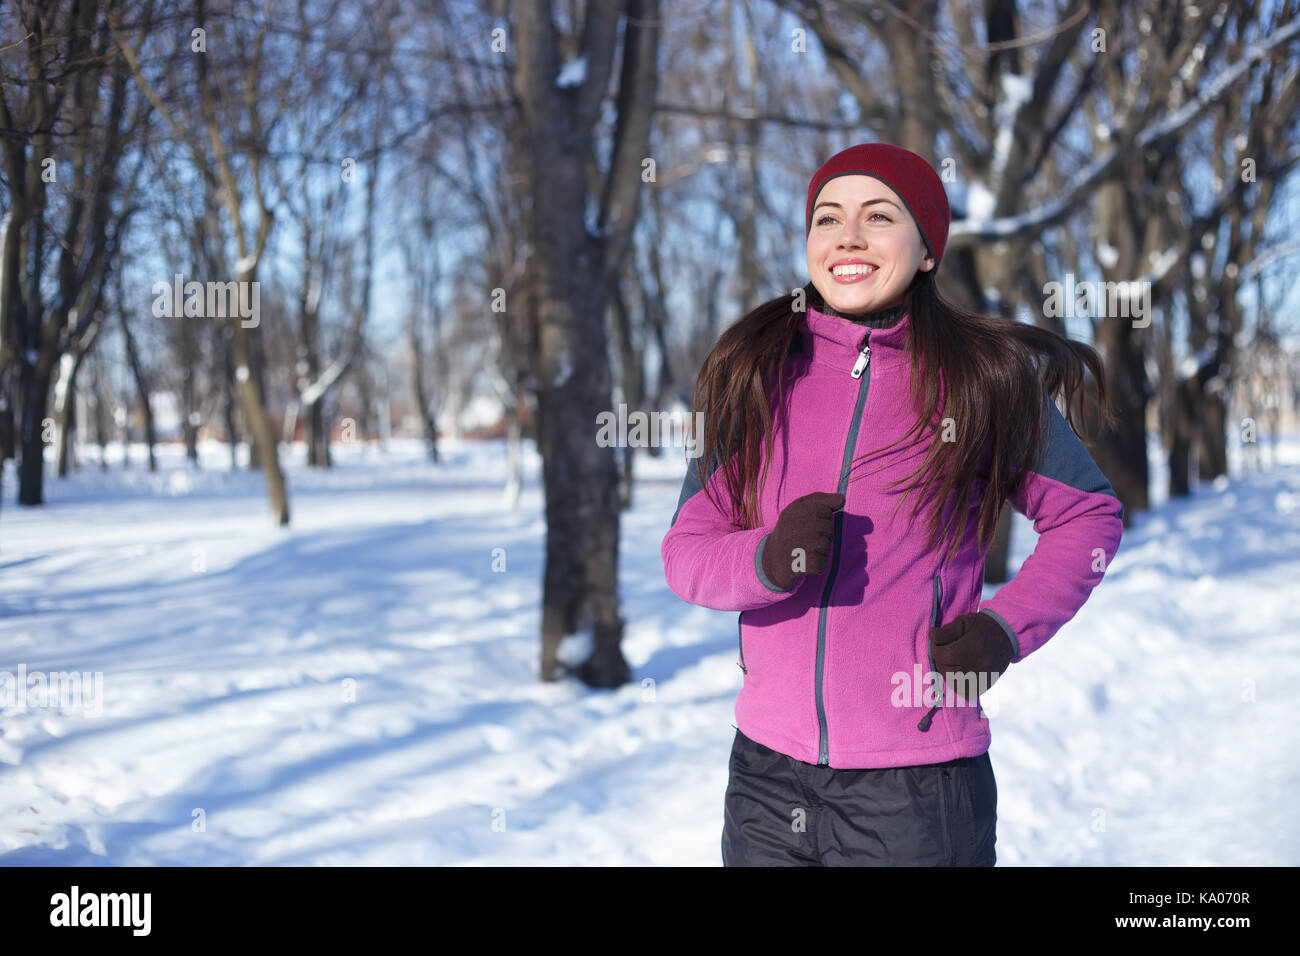 0cb2cf526d91 Running sport woman. Female runner jogging in cold winter forest wearing  warm sporty running clothing and gloves. Fitness happy girl running in  winter